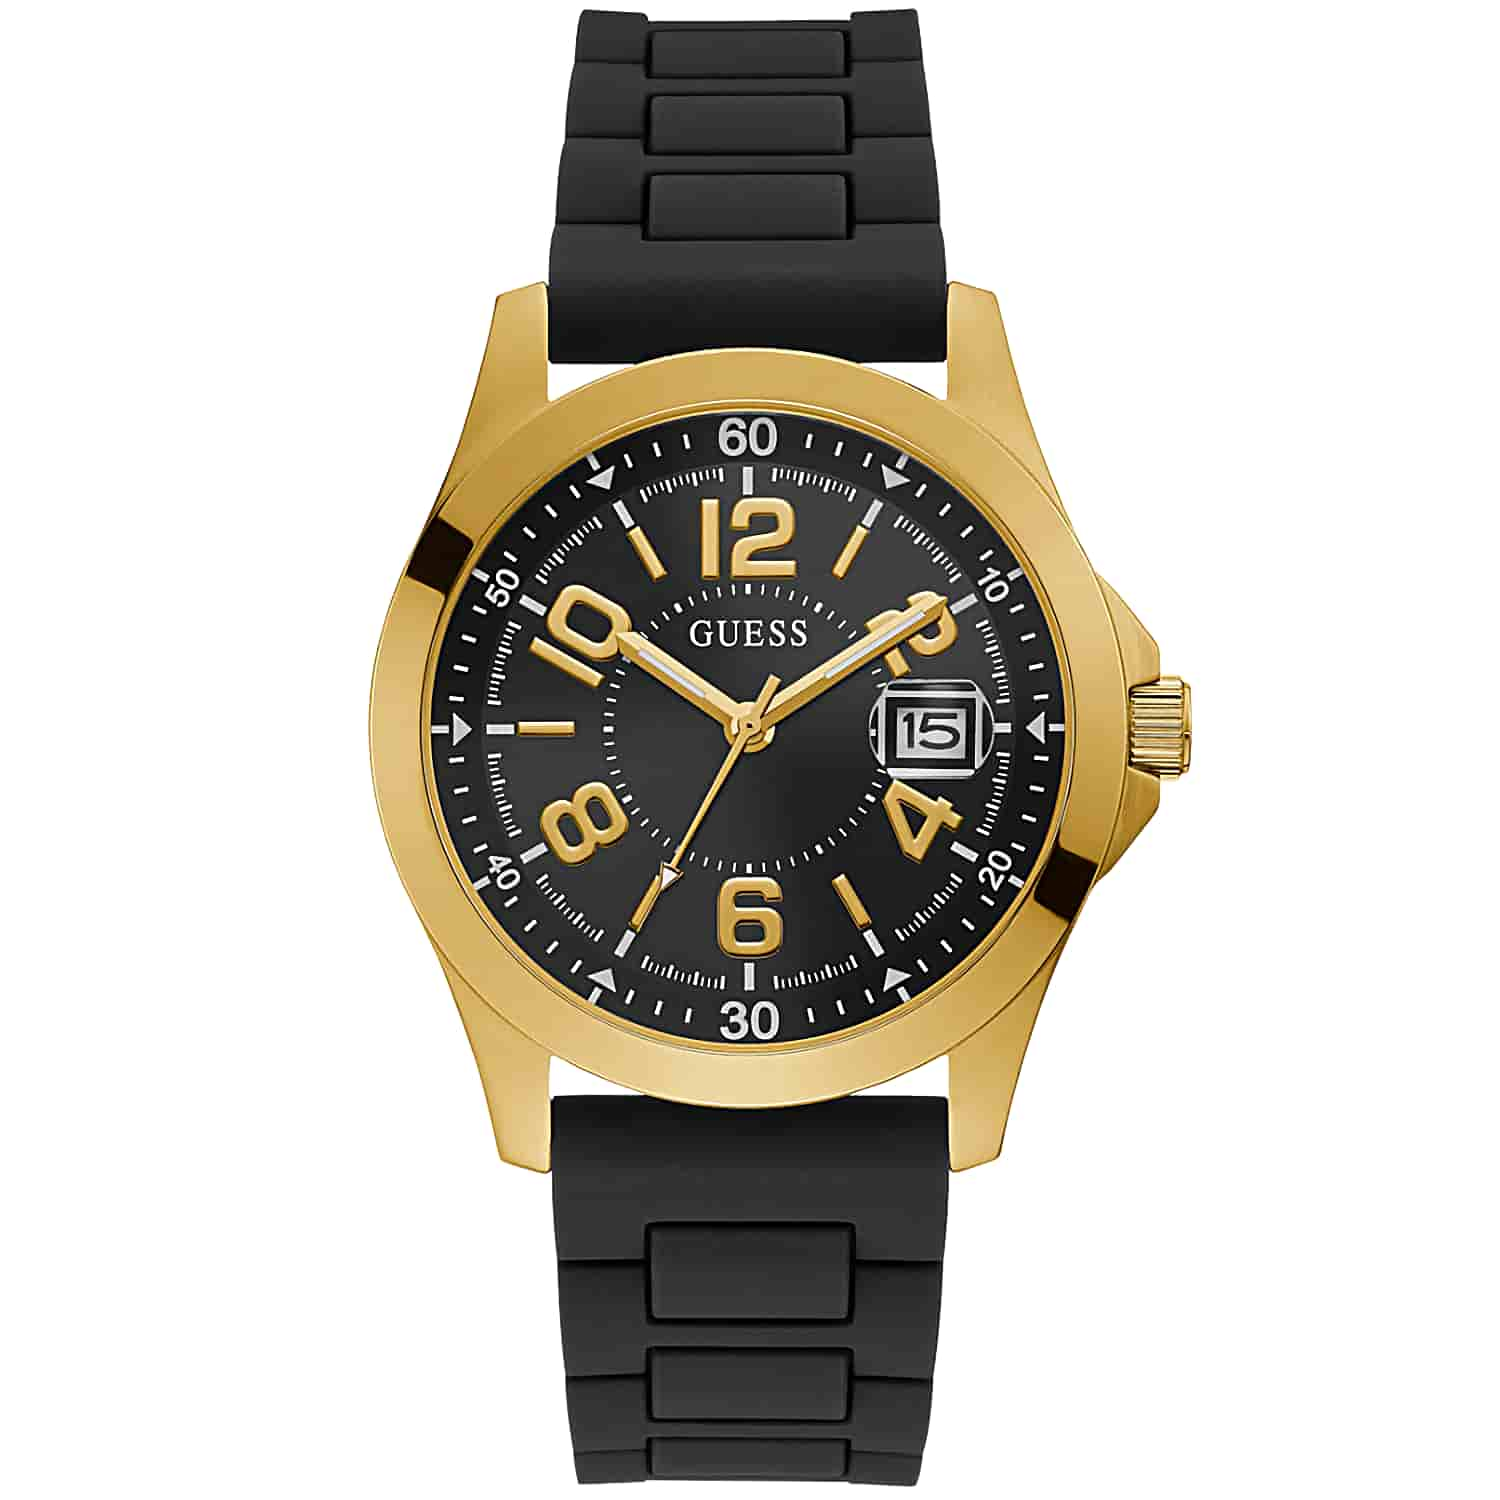 GUESS GOLD TONE CASE BLACK SILICONE WATCH GW0058G2